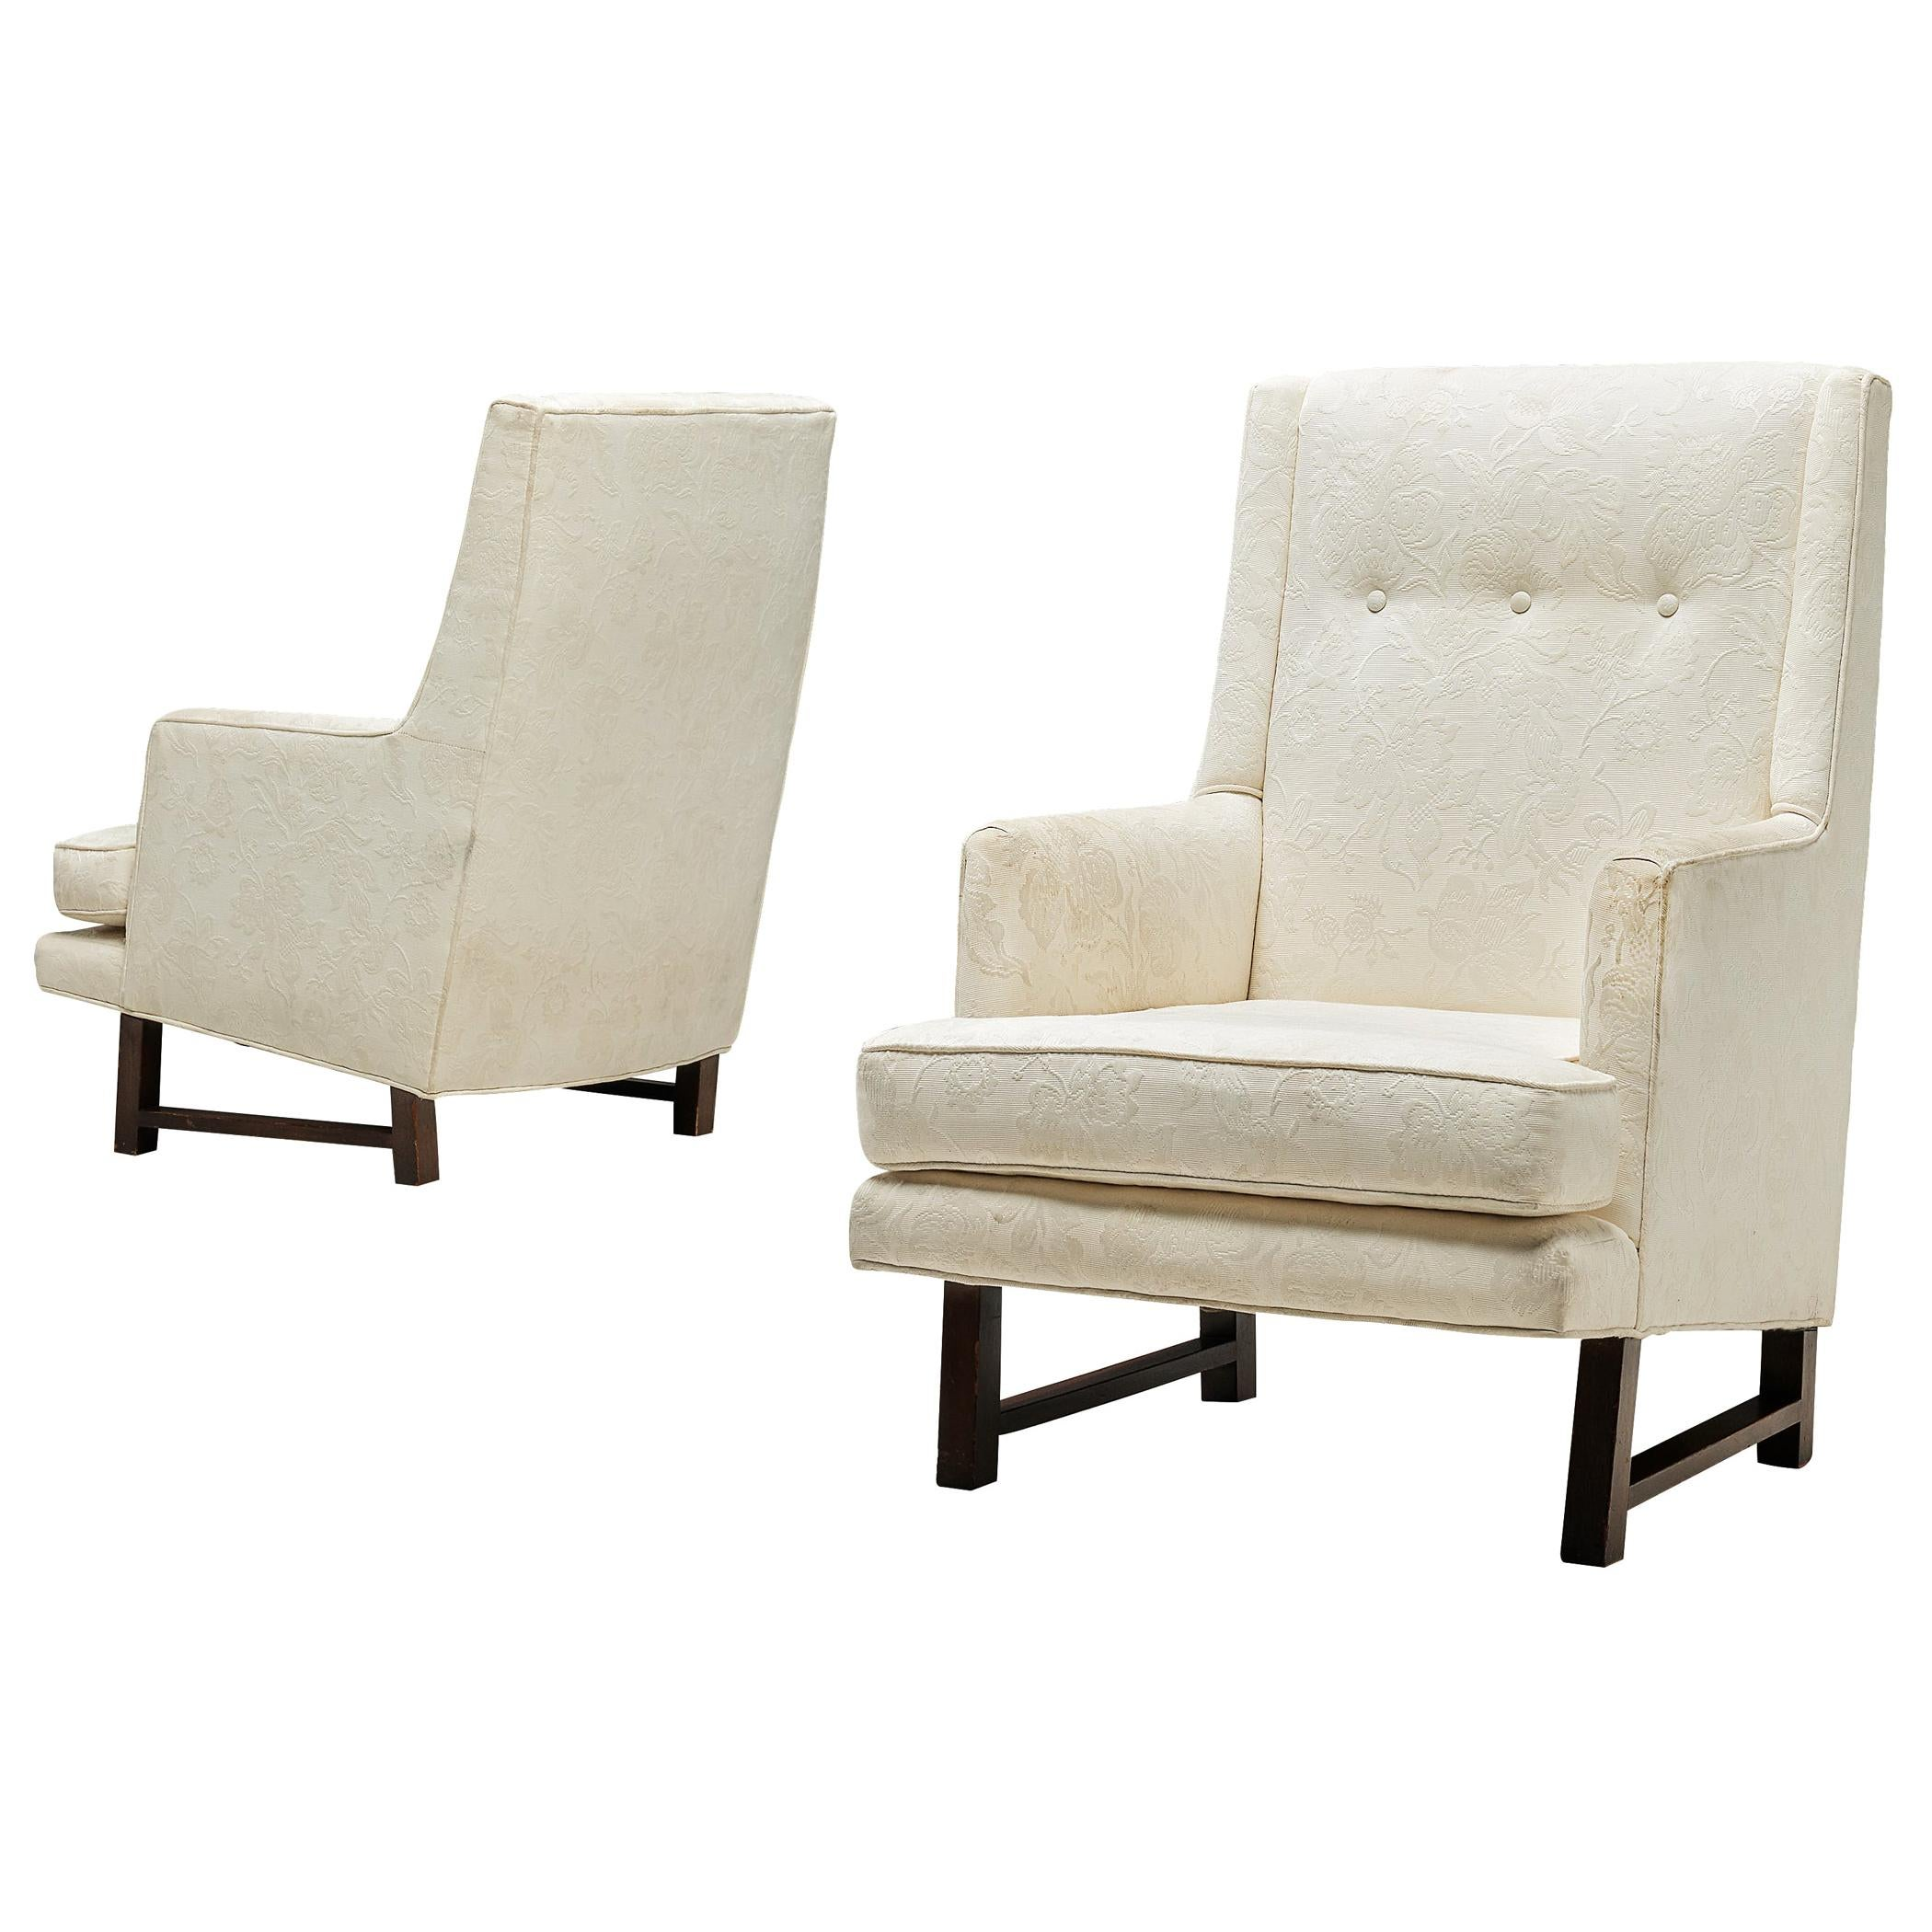 Edward Wormley for Dunbar Set of Lounge Chairs in Original Upholstery